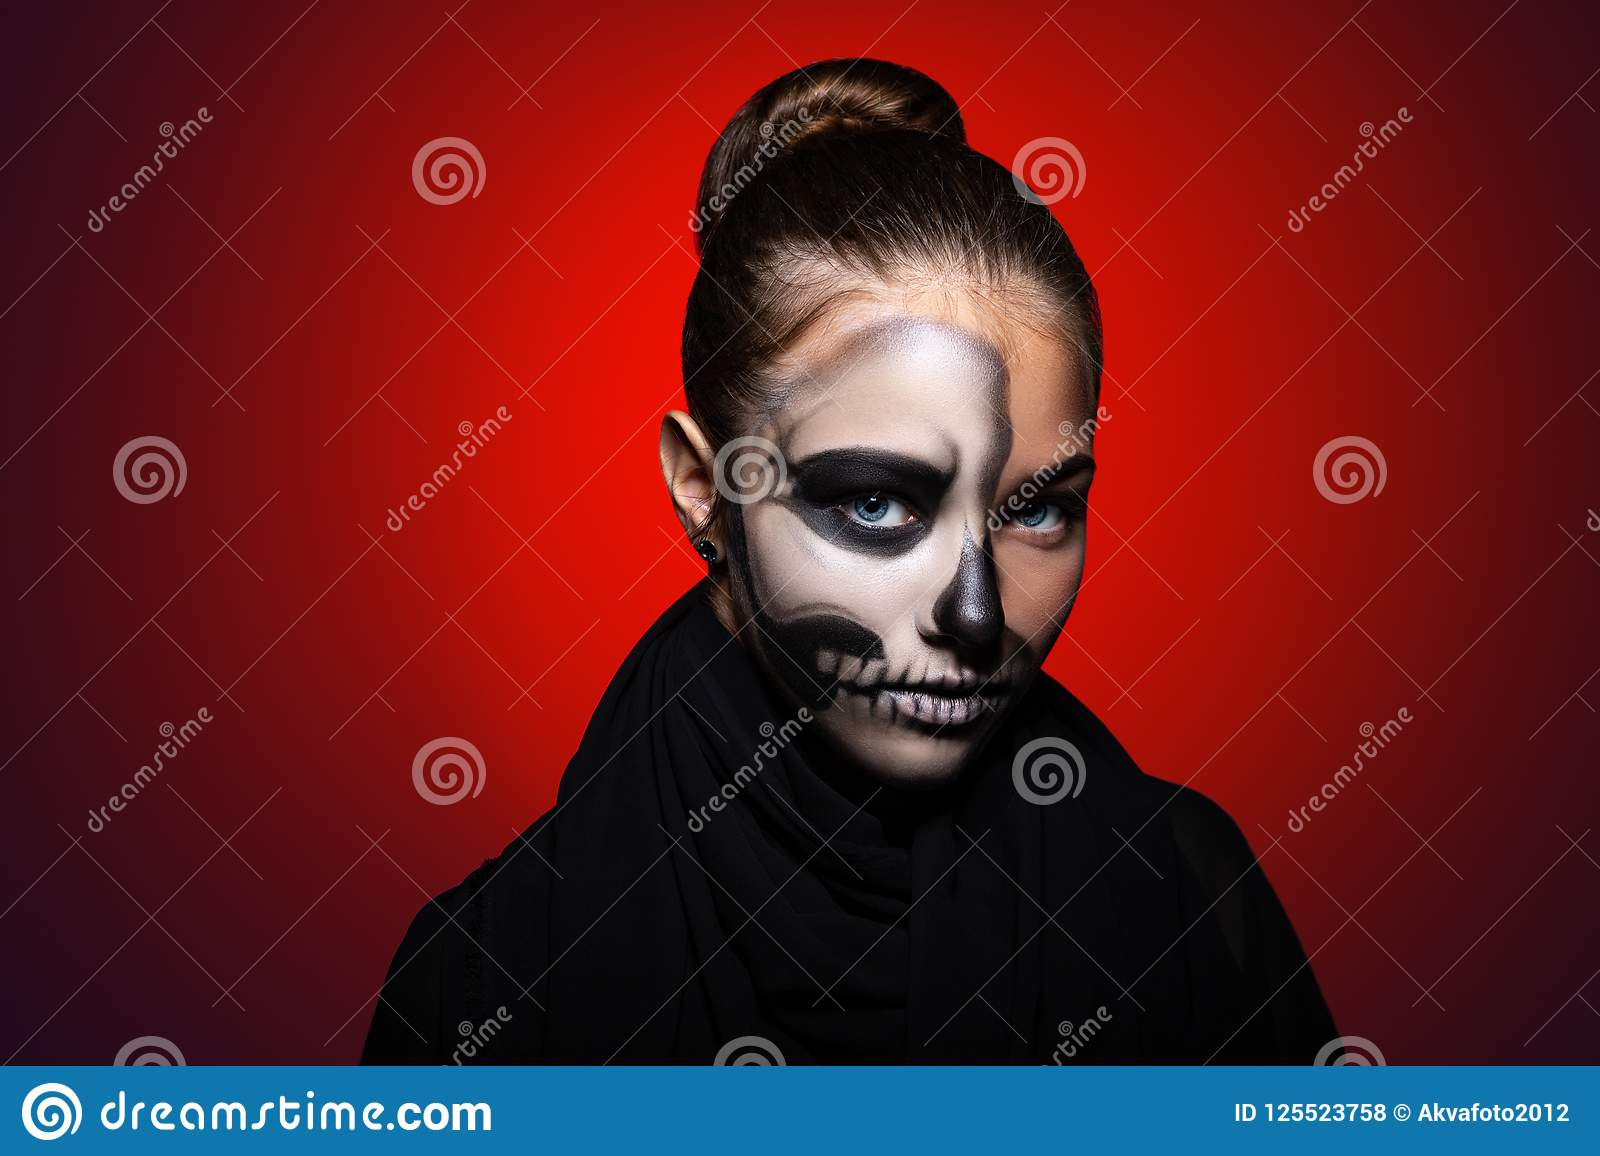 Halloween. young beautiful girl with skeleton makeup on her face. Girl on a bright red background